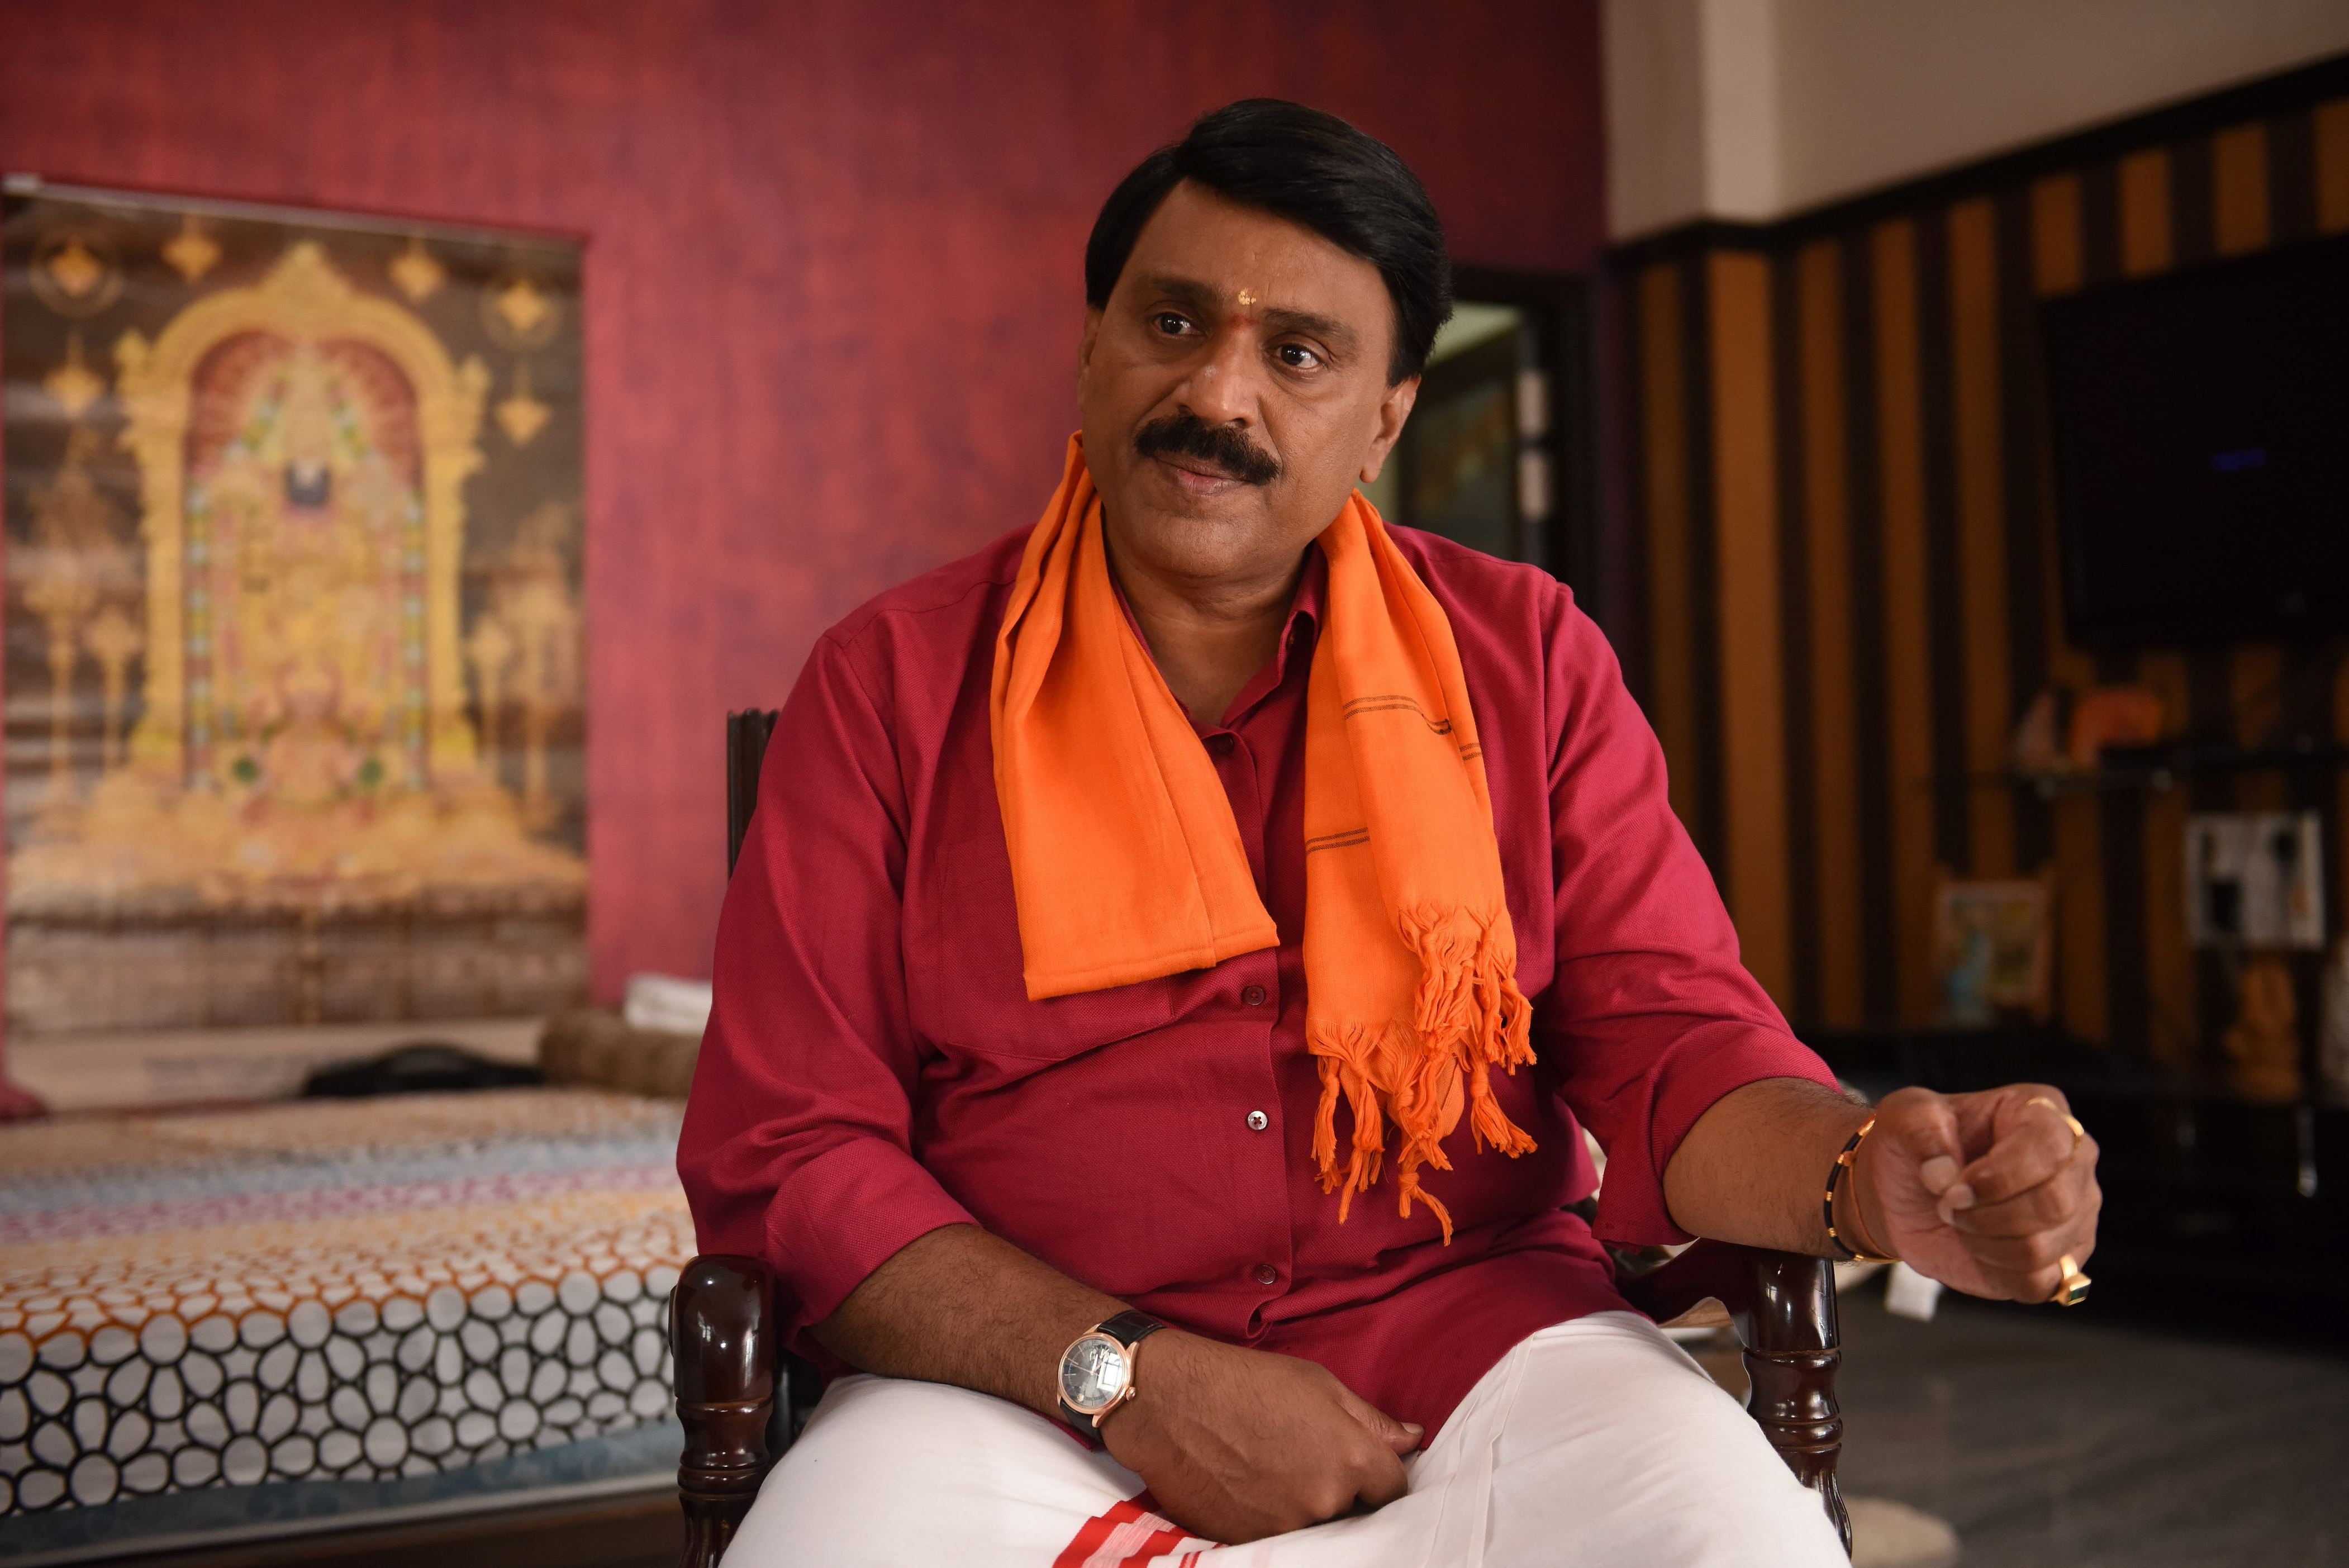 India: Janardhan Reddy, Missing For 3 Days, Appears For